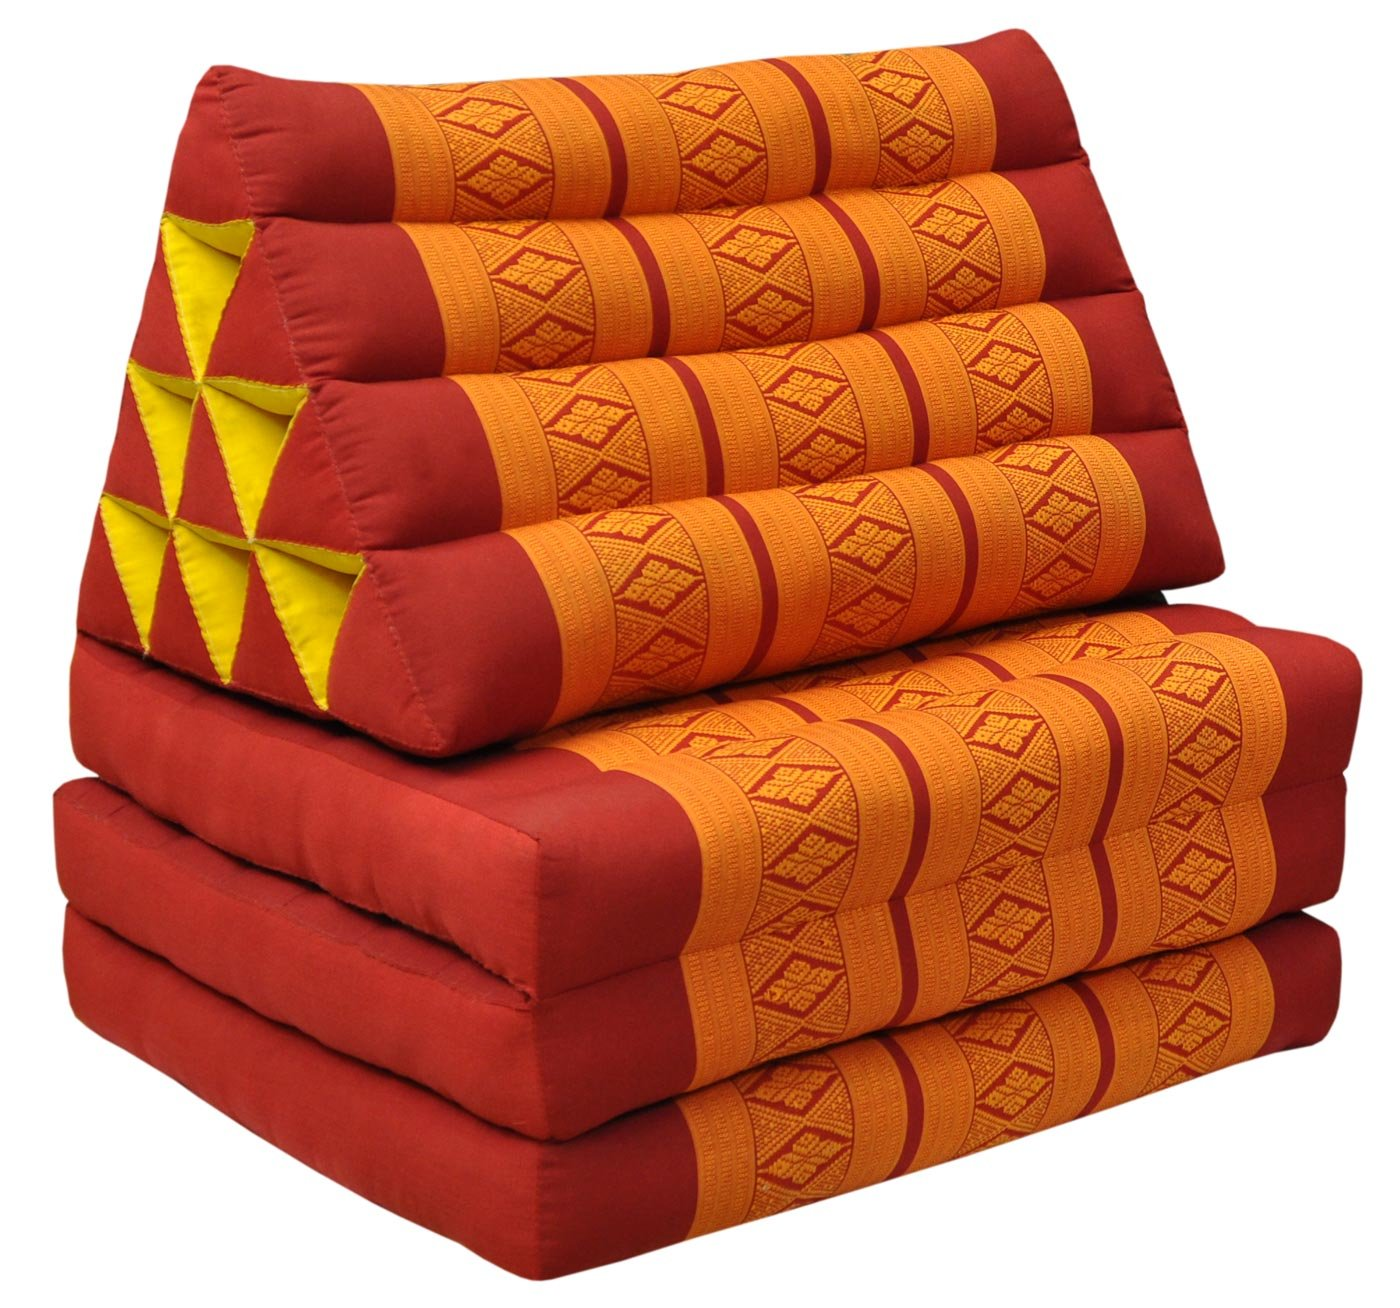 Thai mattress 3 folds with triangle cushion, red/orange, relaxation, beach, pool, meditation garden (81003) by Wilai GmbH